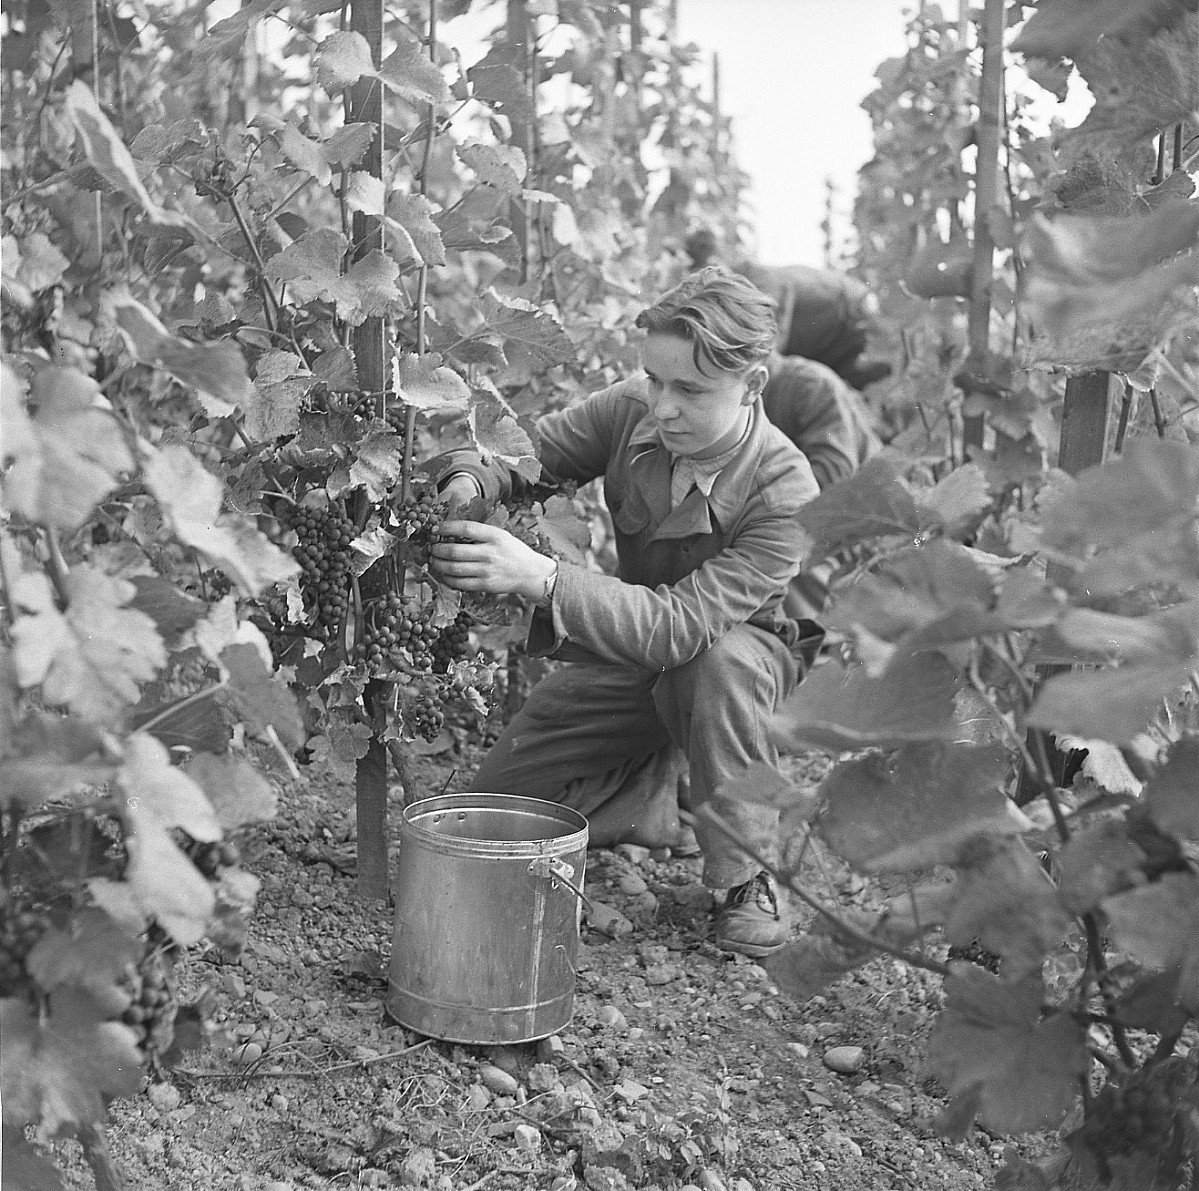 GFA 17/510963.4: Grape harvest at the apprentices' home in Dachsen